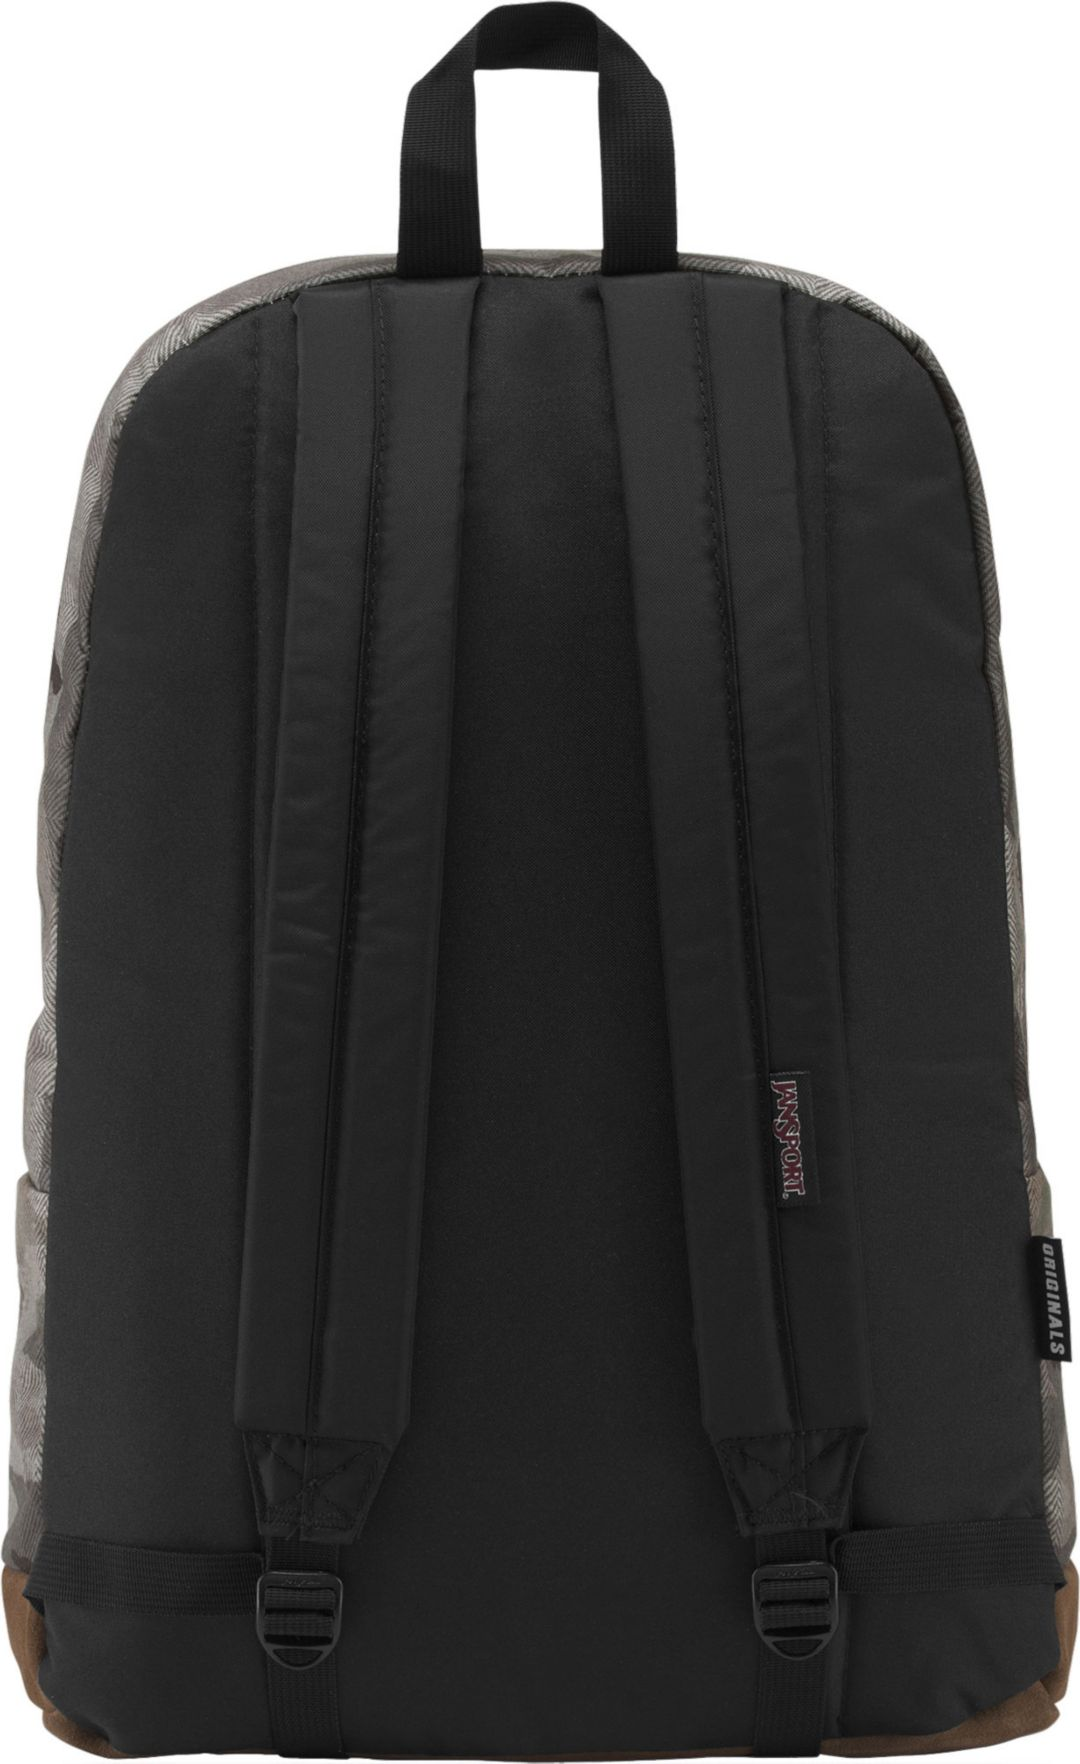 9d314259c61b JanSport Right Pack Expressions Backpack